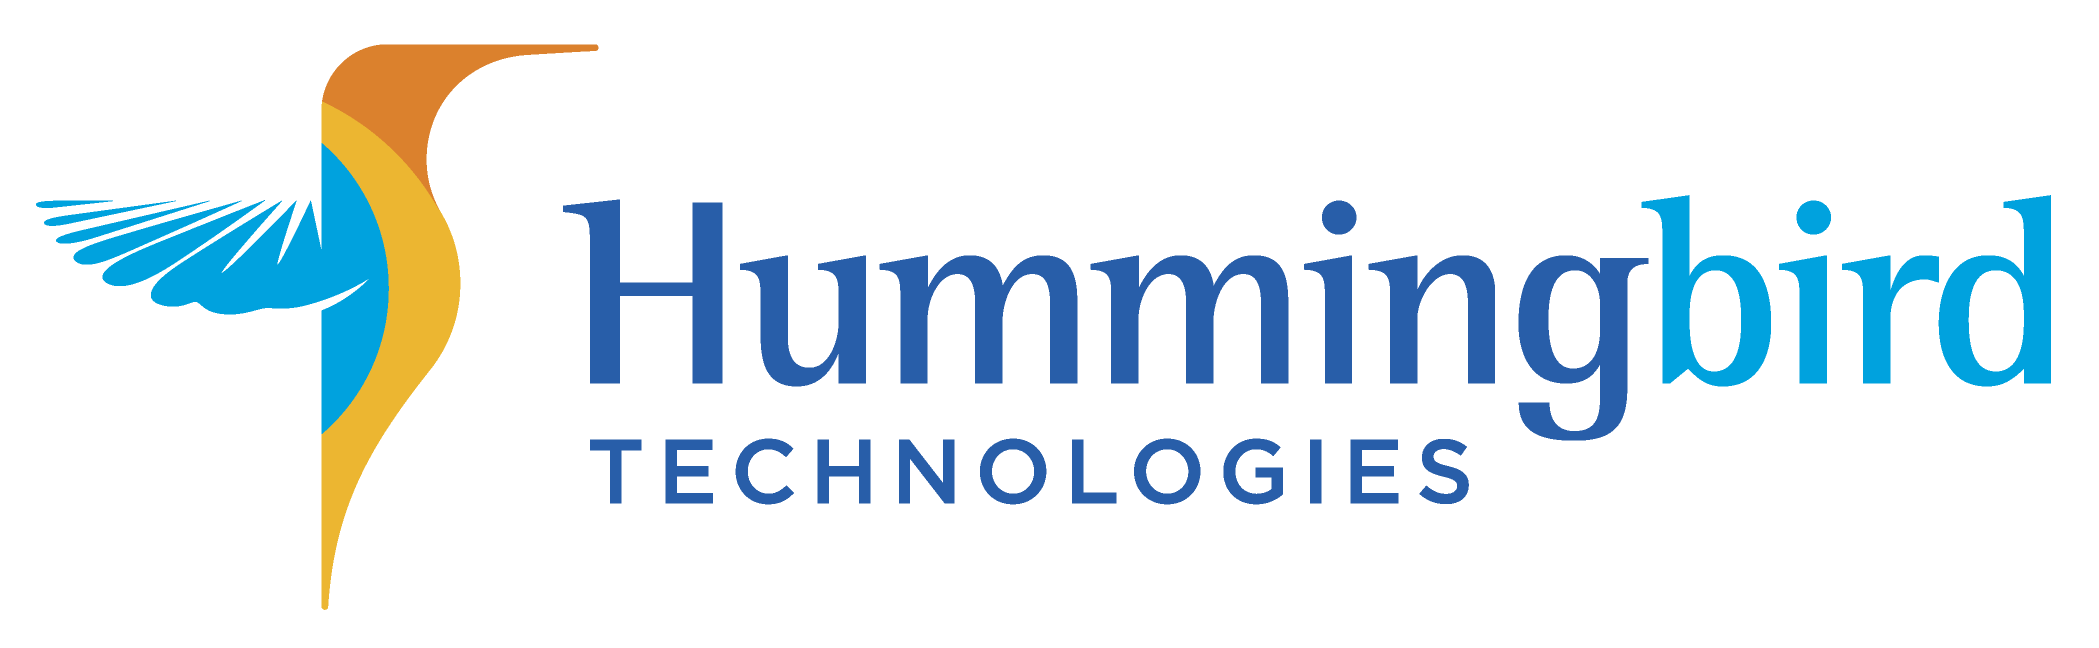 Hummingbird Technologies.